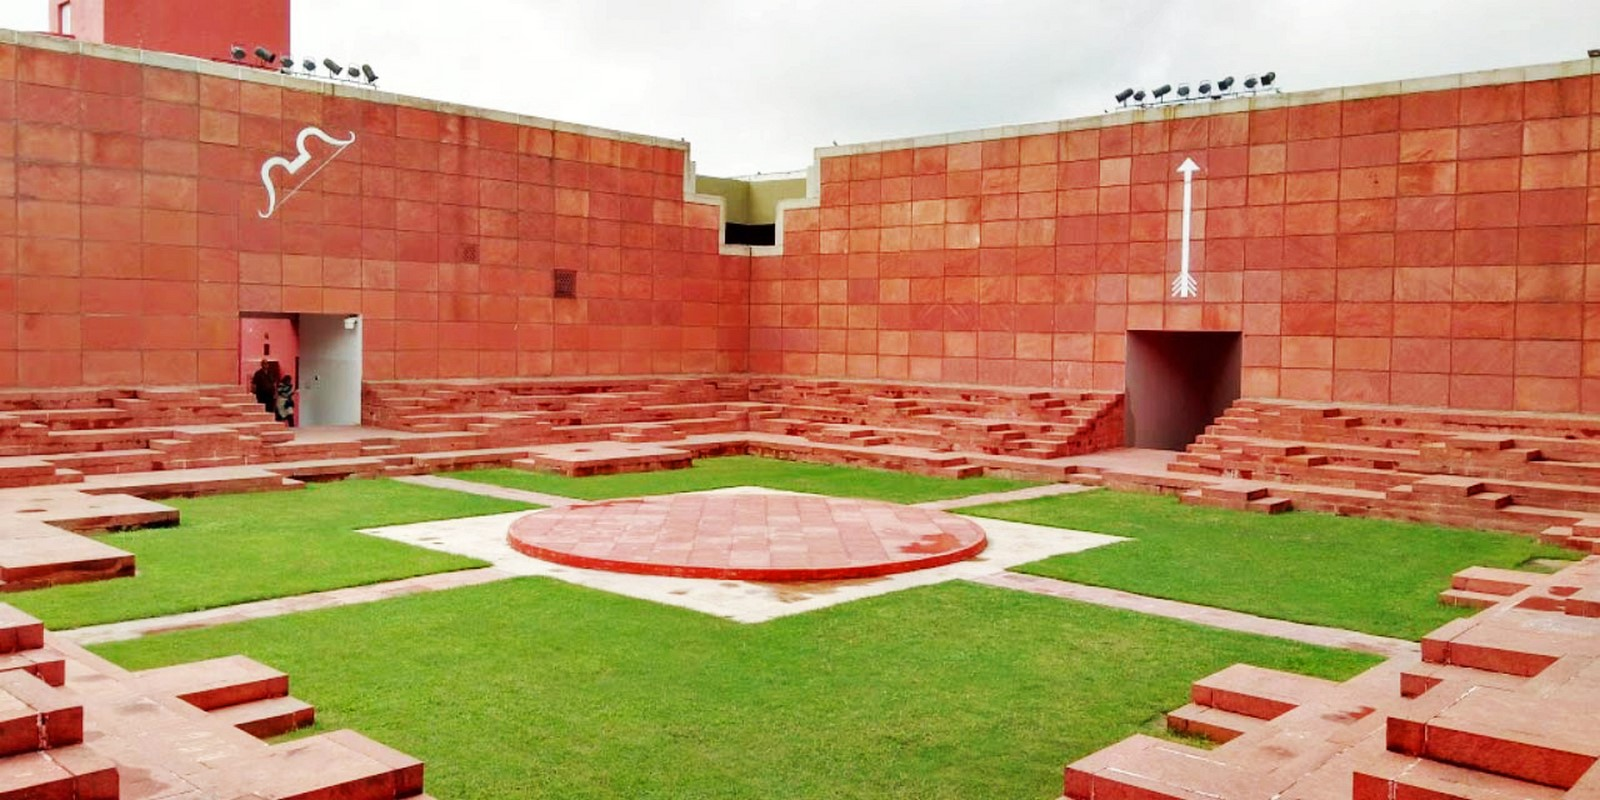 Jawahar Kala Kendra by Charles Correa: Reflection of the city's architectureJawahar Kala Kendra by Charles Correa: Reflection of the city's architecture - Sheet1